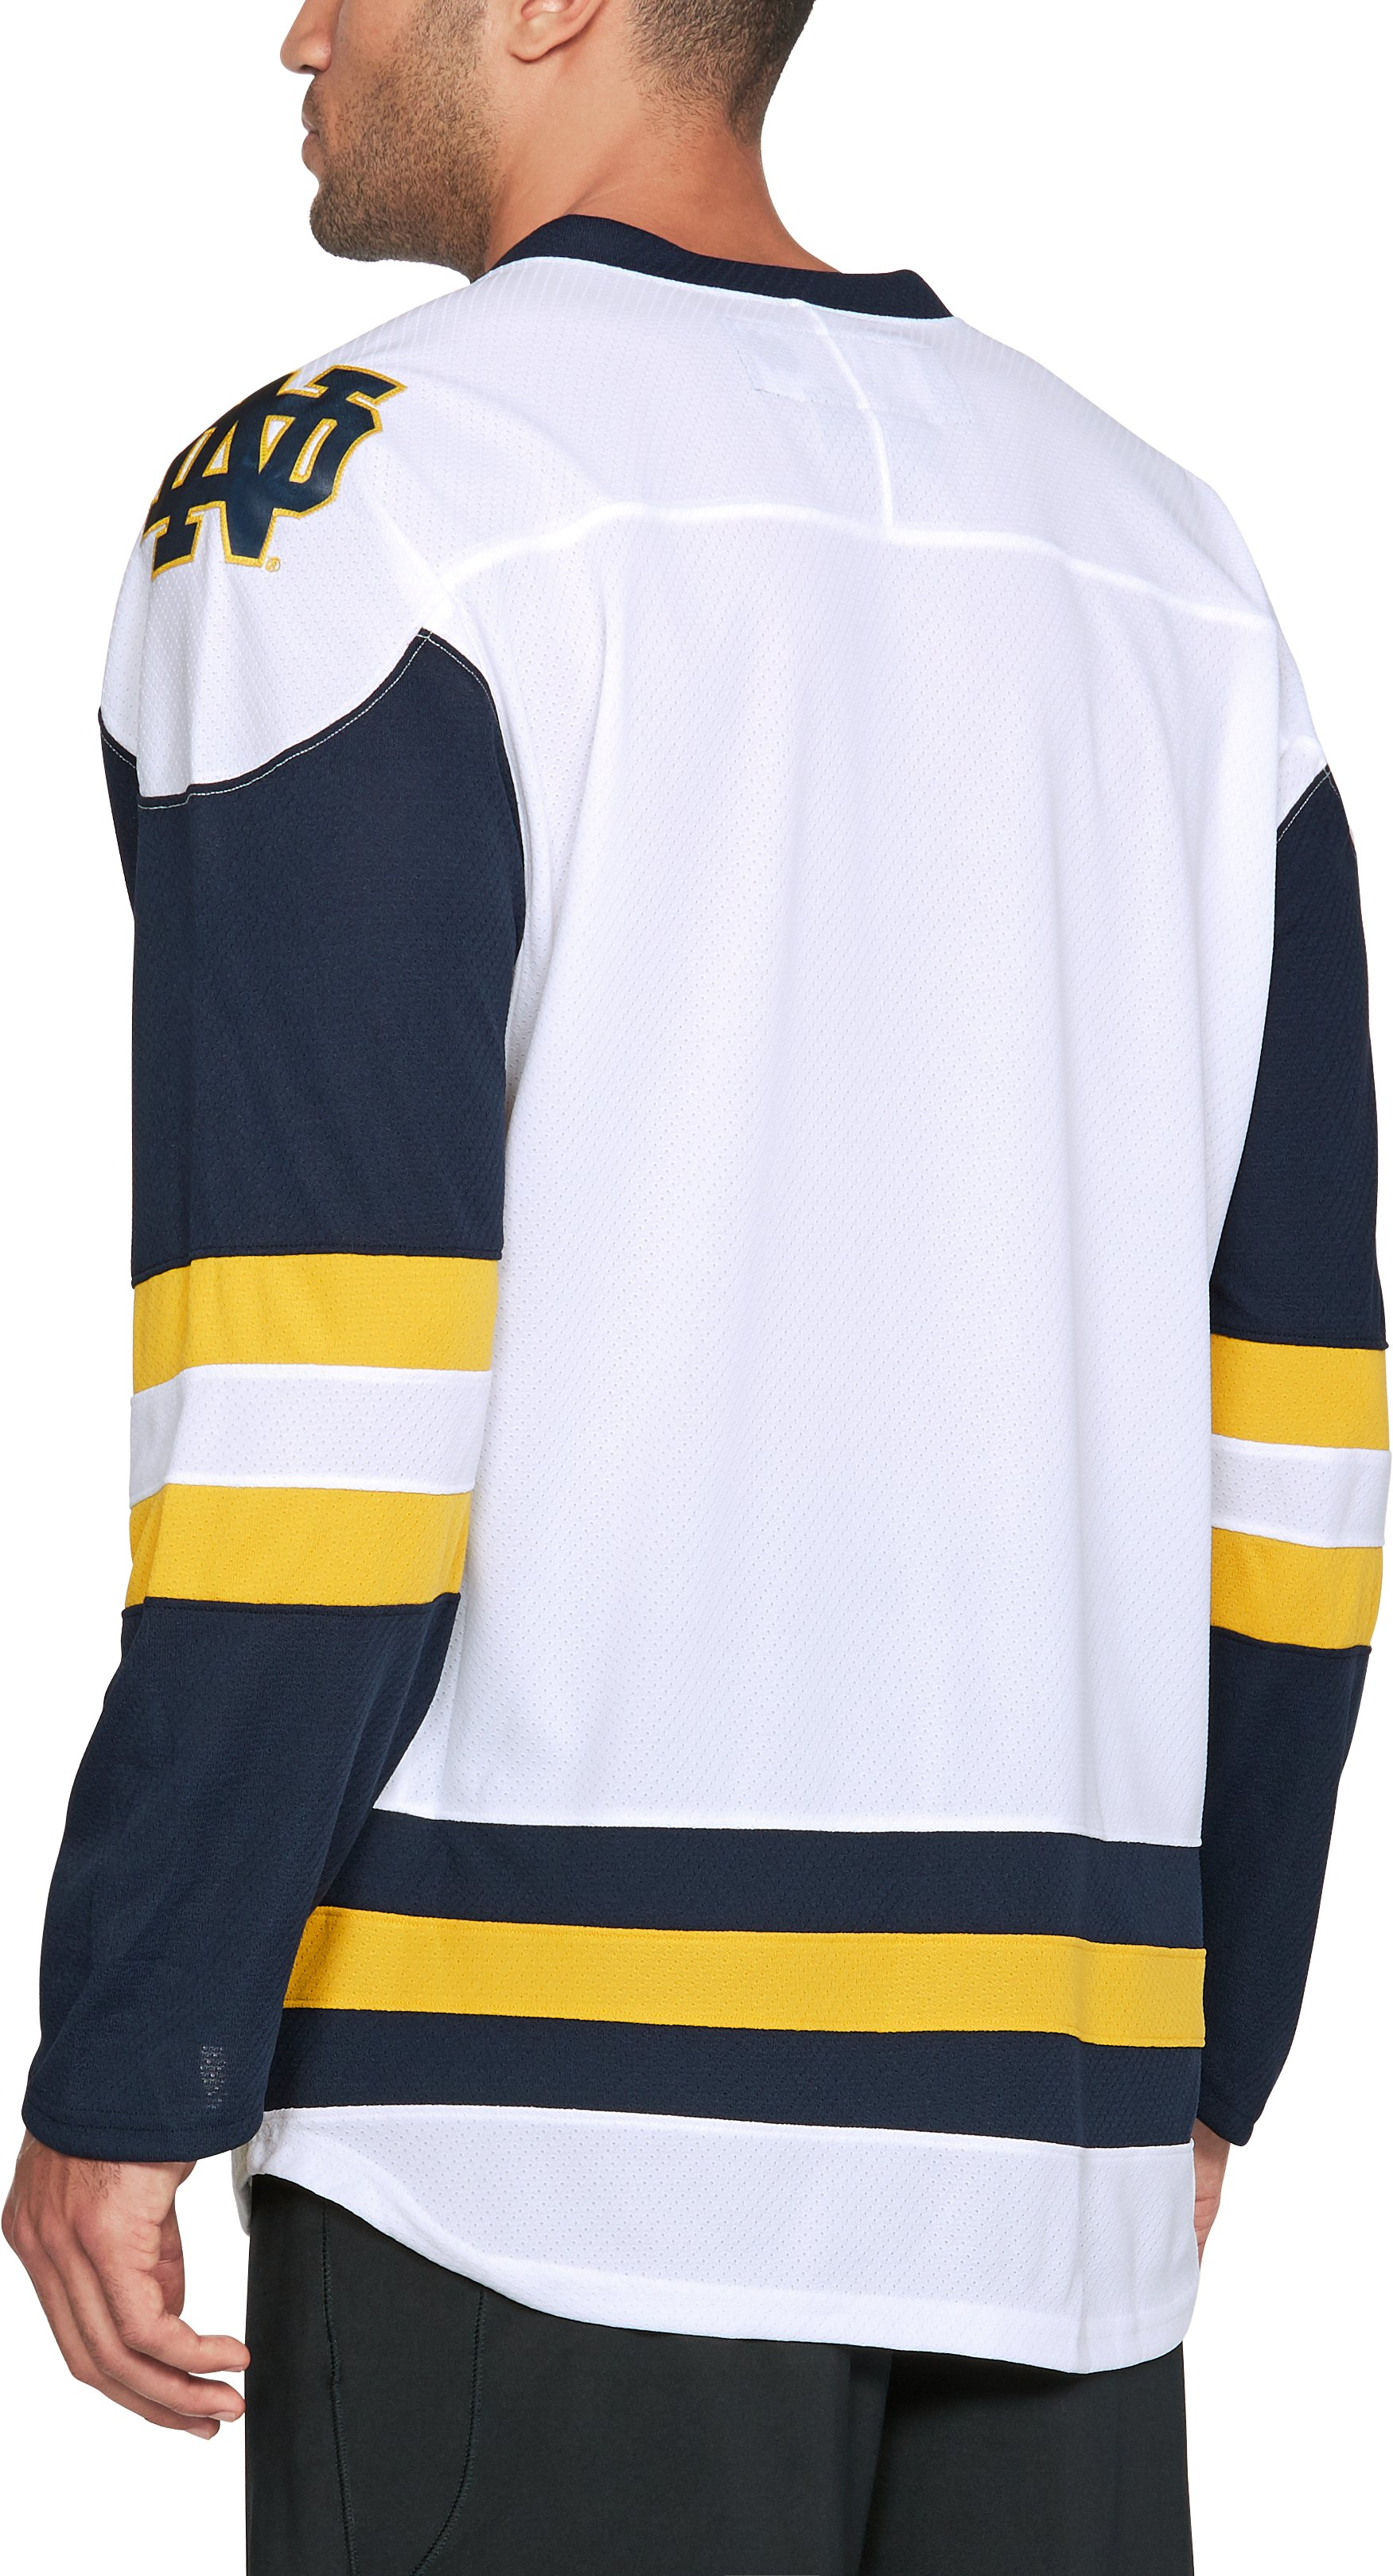 Men's Notre Dame Hockey Replica Jersey, White,